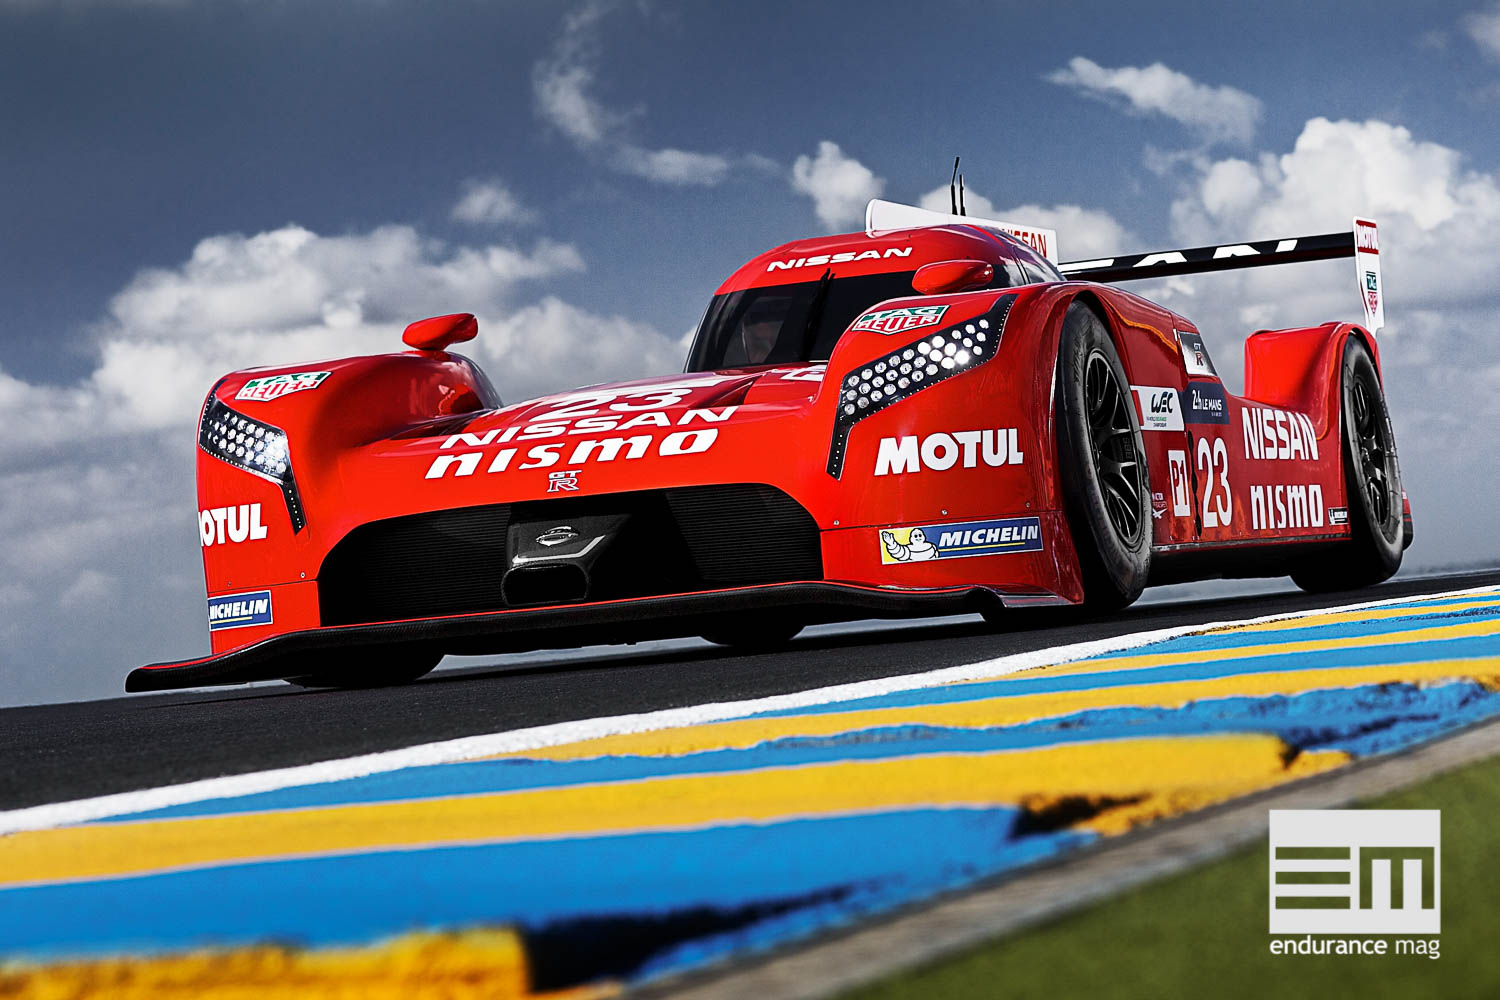 LE MANS, France (May 31, 2015) – Nissan today completed an extensive test program at Le Mans during the official test day. The three Nissan GT-R LM NISMOs were the first cars on track when the morning session went green, ready to work through a comprehensive test program to dial the cars into the unique Le Mans circuit.